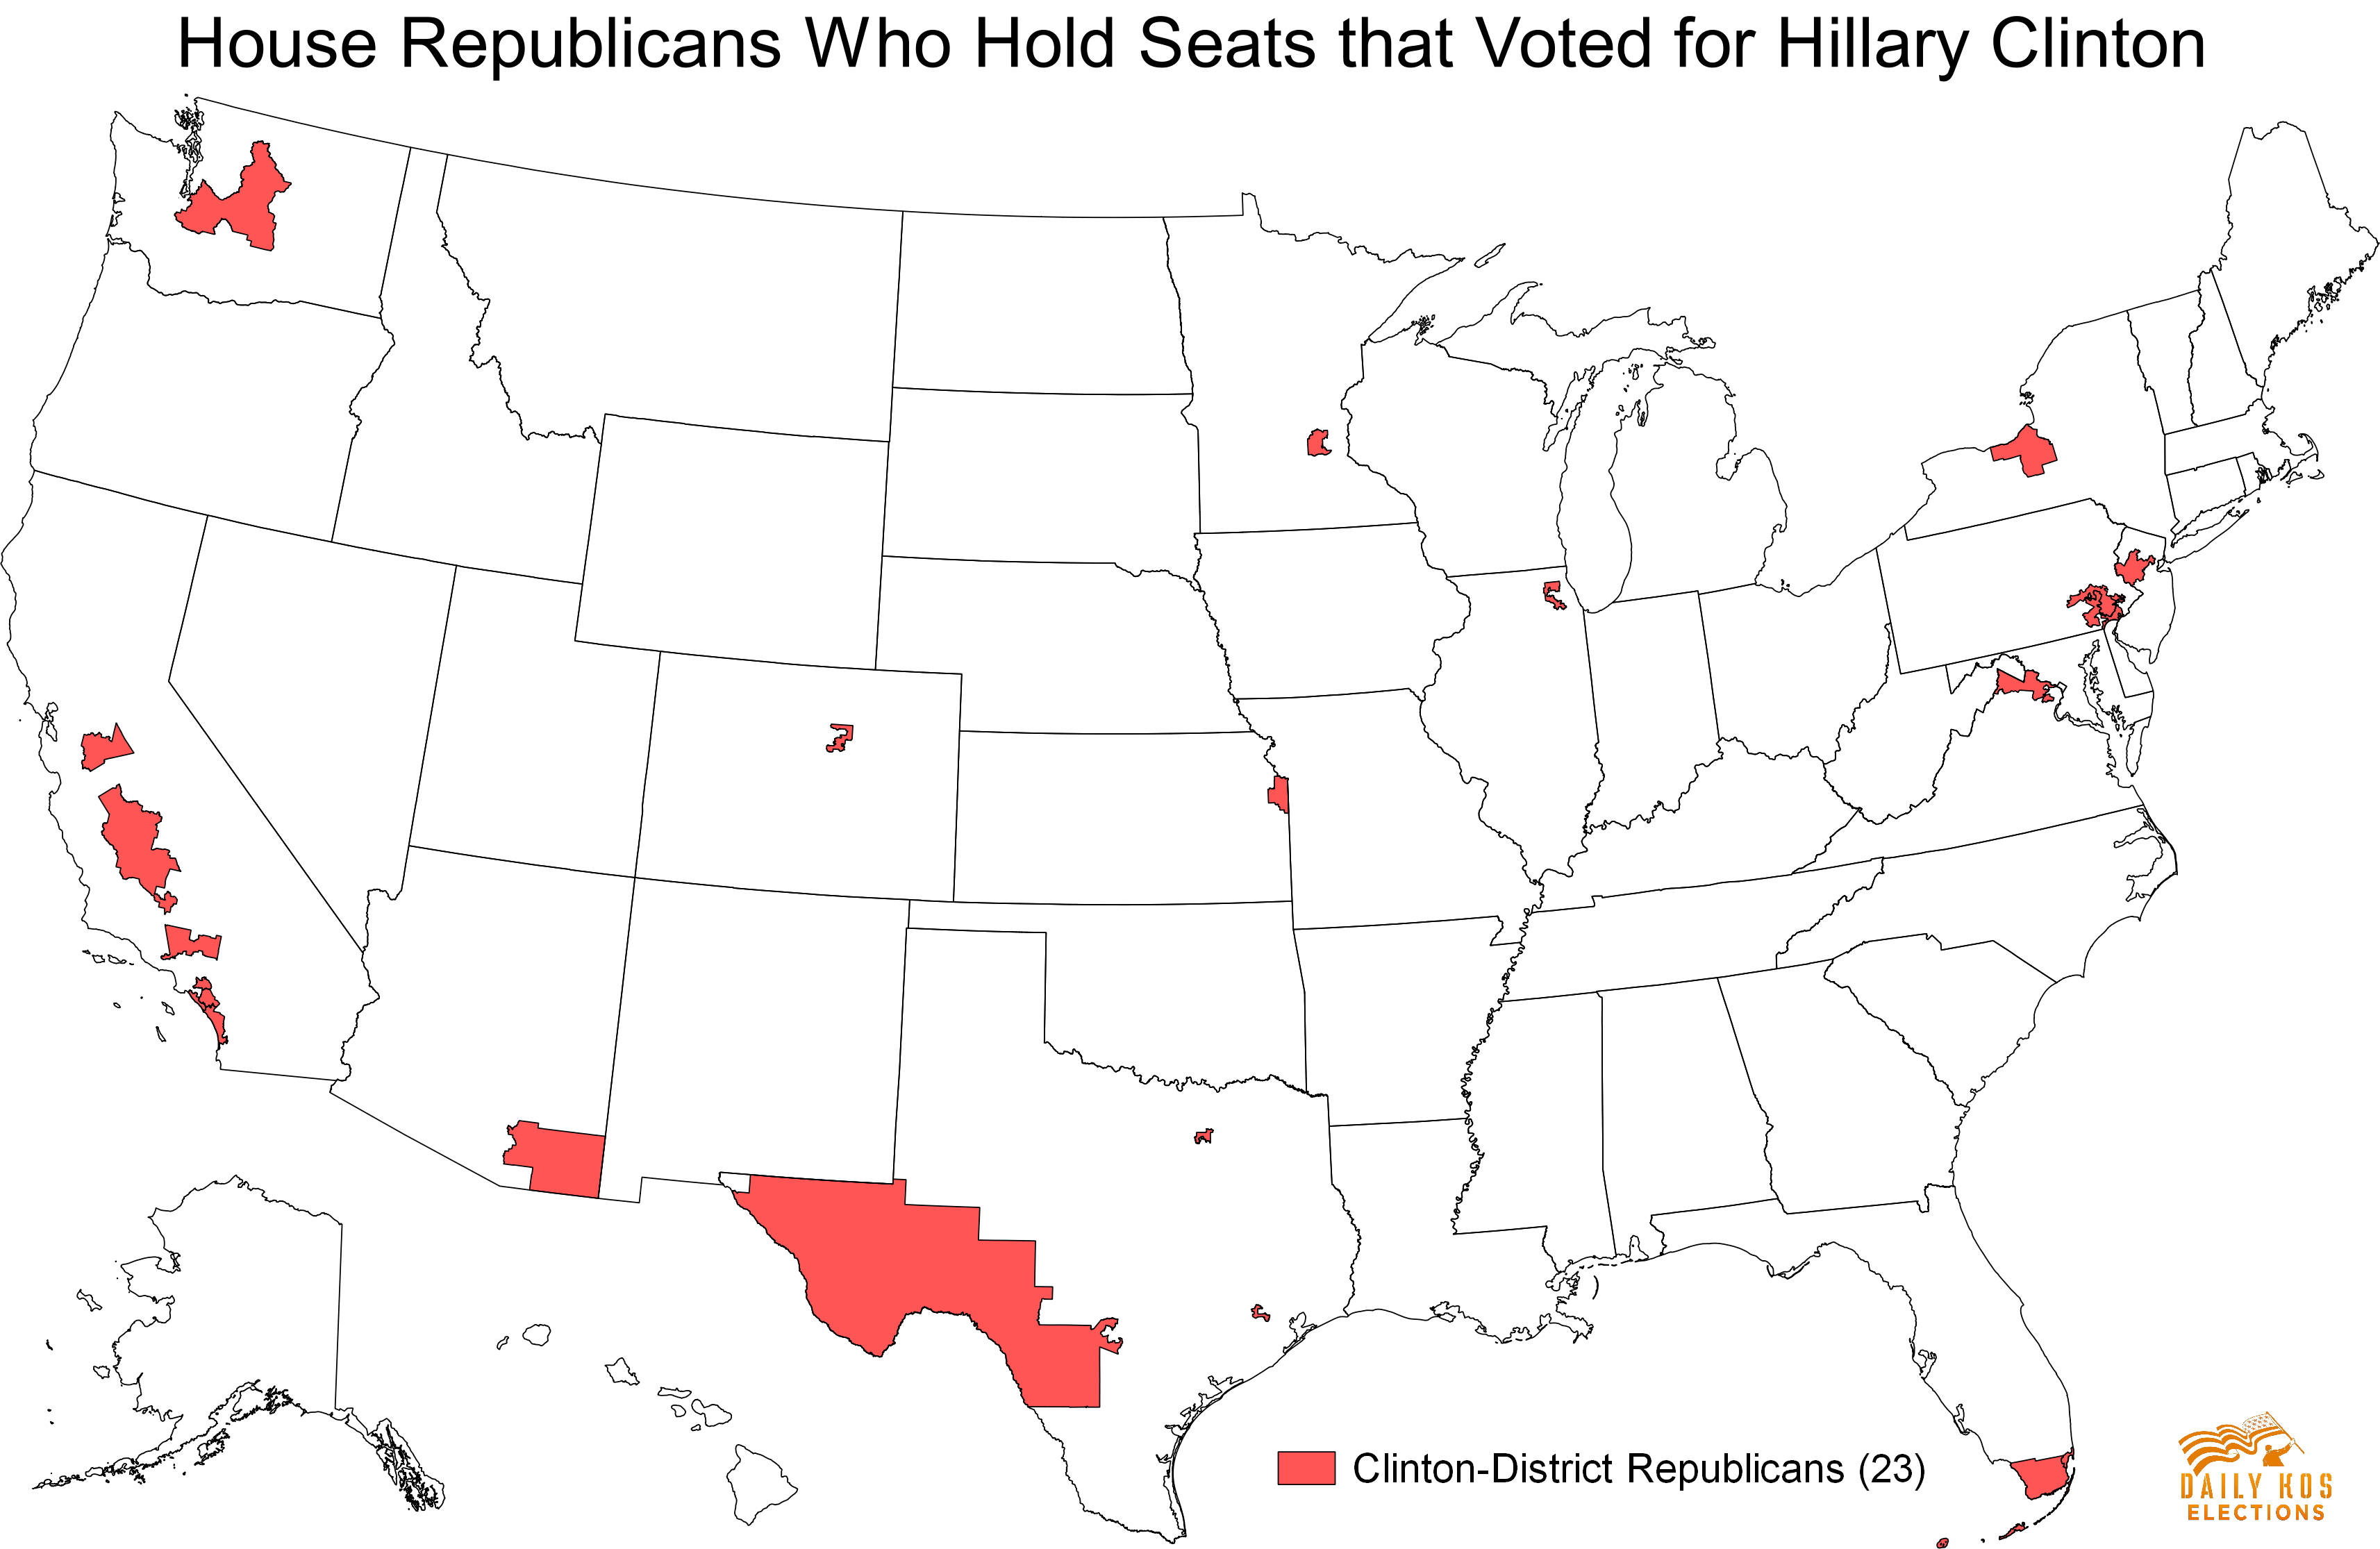 These 23 Republicans hold congressional districts that voted for